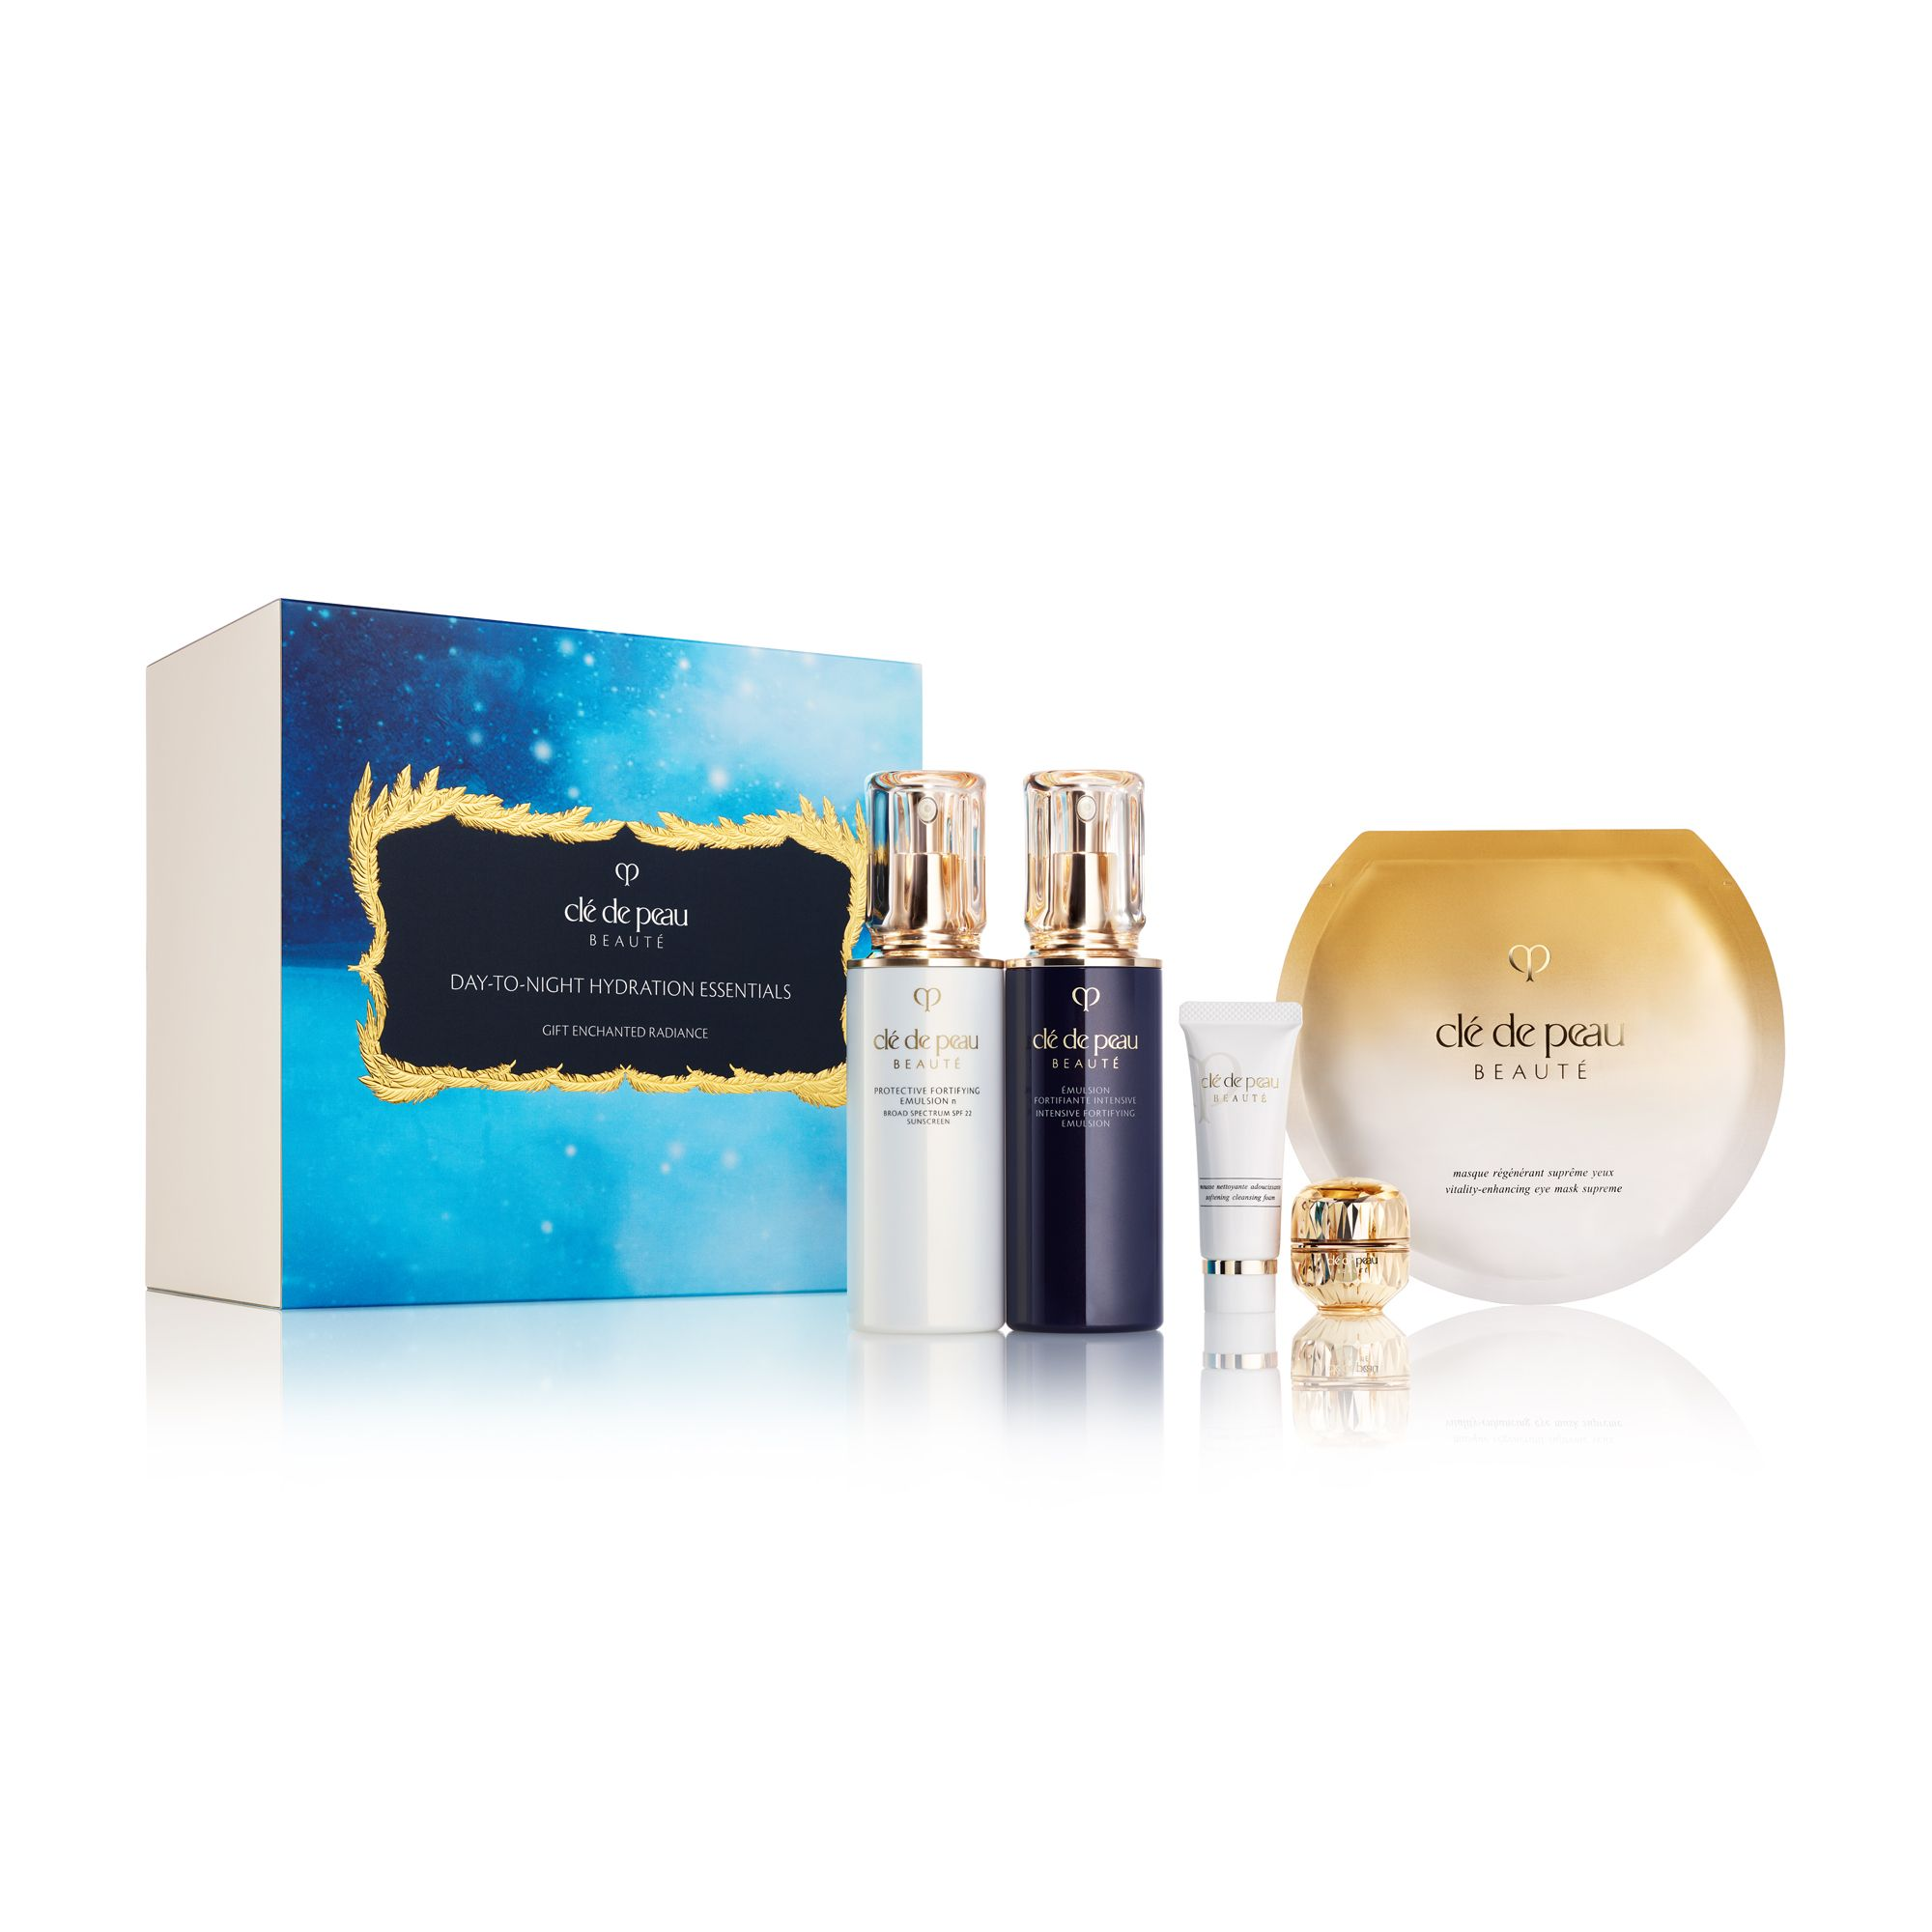 Clé de Peau Beauté Day-To-Night Hydration Essentials Day & Night 5-Piece Moisturizing Essentials Set